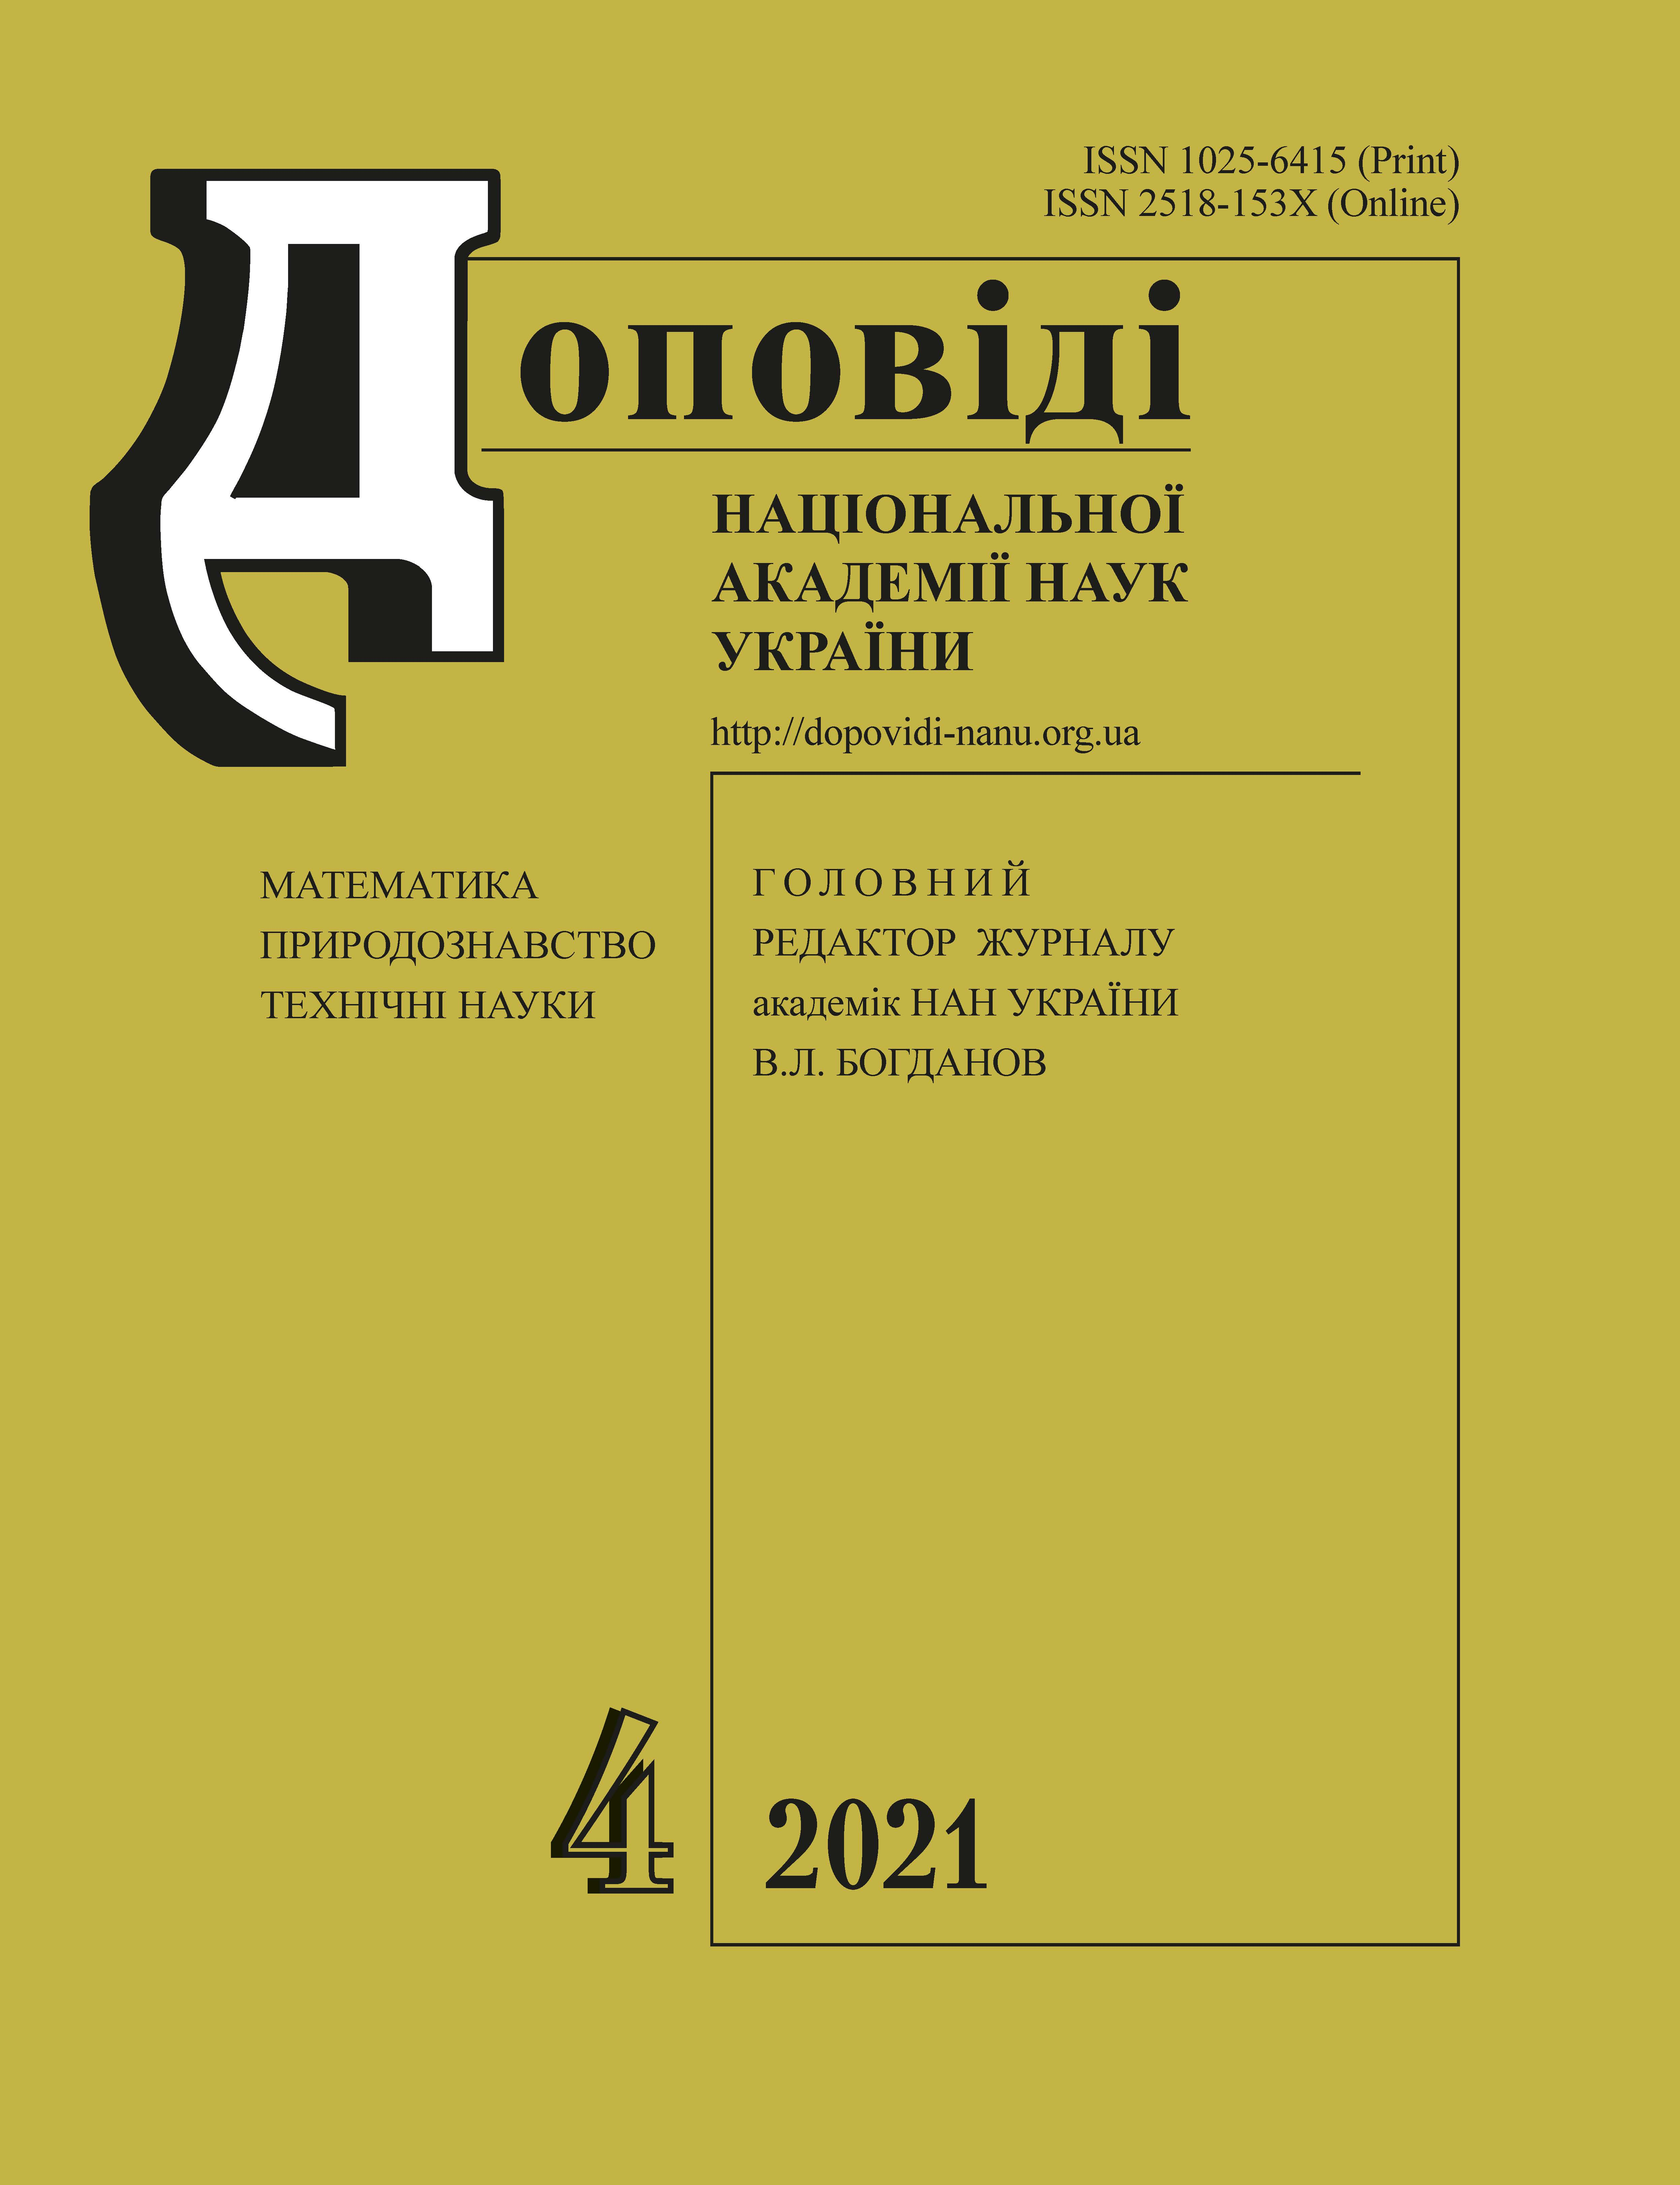 View No. 4 (2021): Reports of the National Academy of Sciences of Ukraine